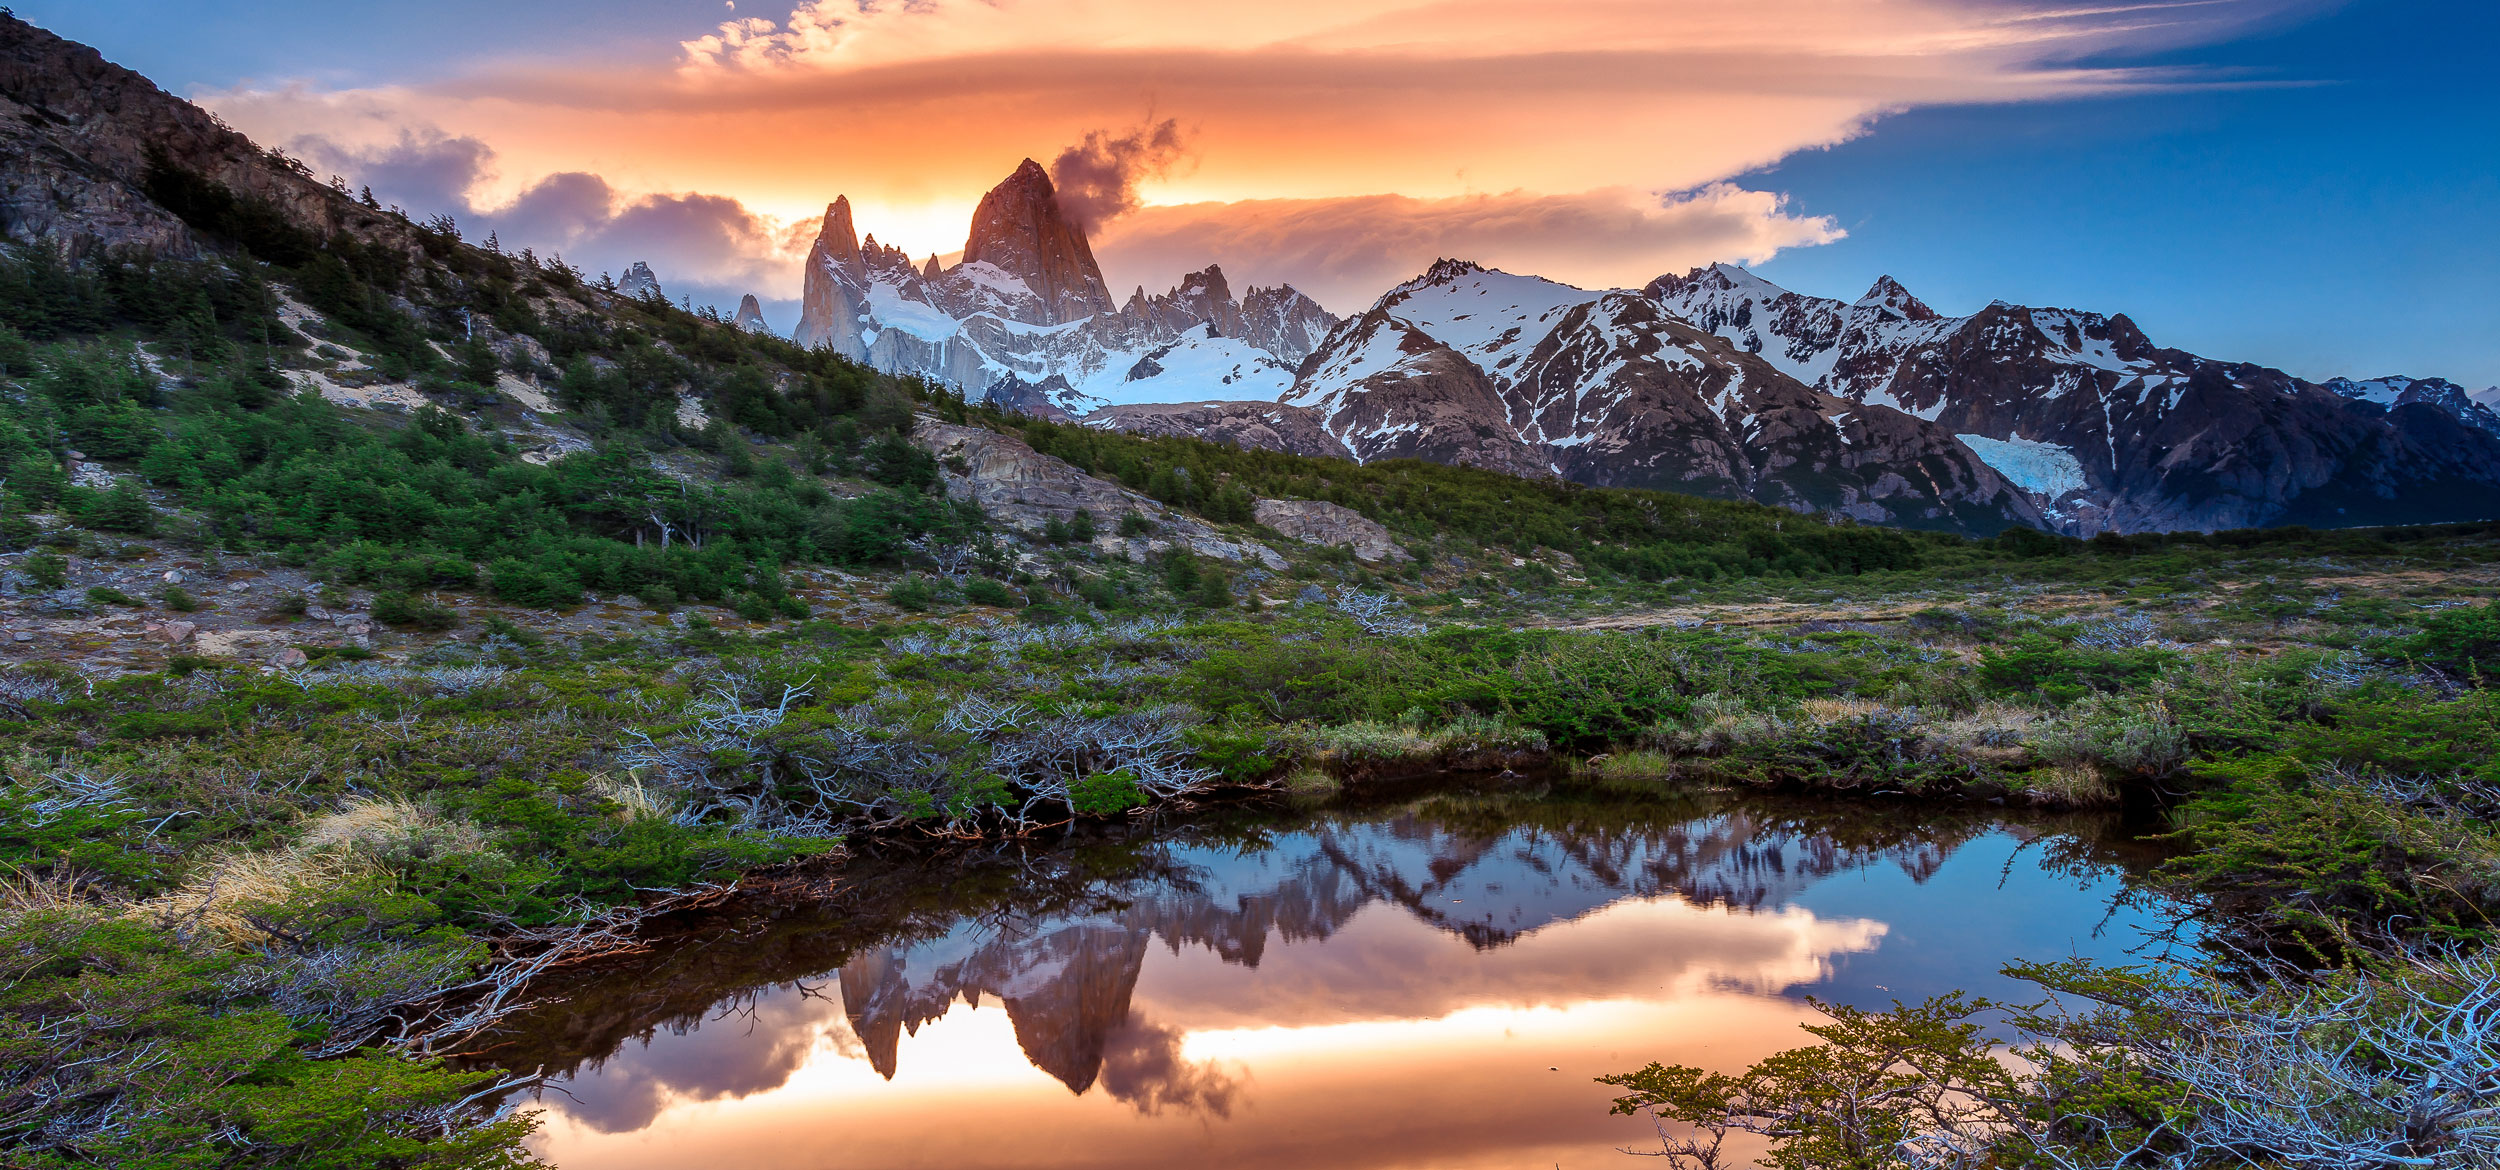 Reflection of Mt. Fitz Roy in a lake in, Los Glaciares, Argentina.